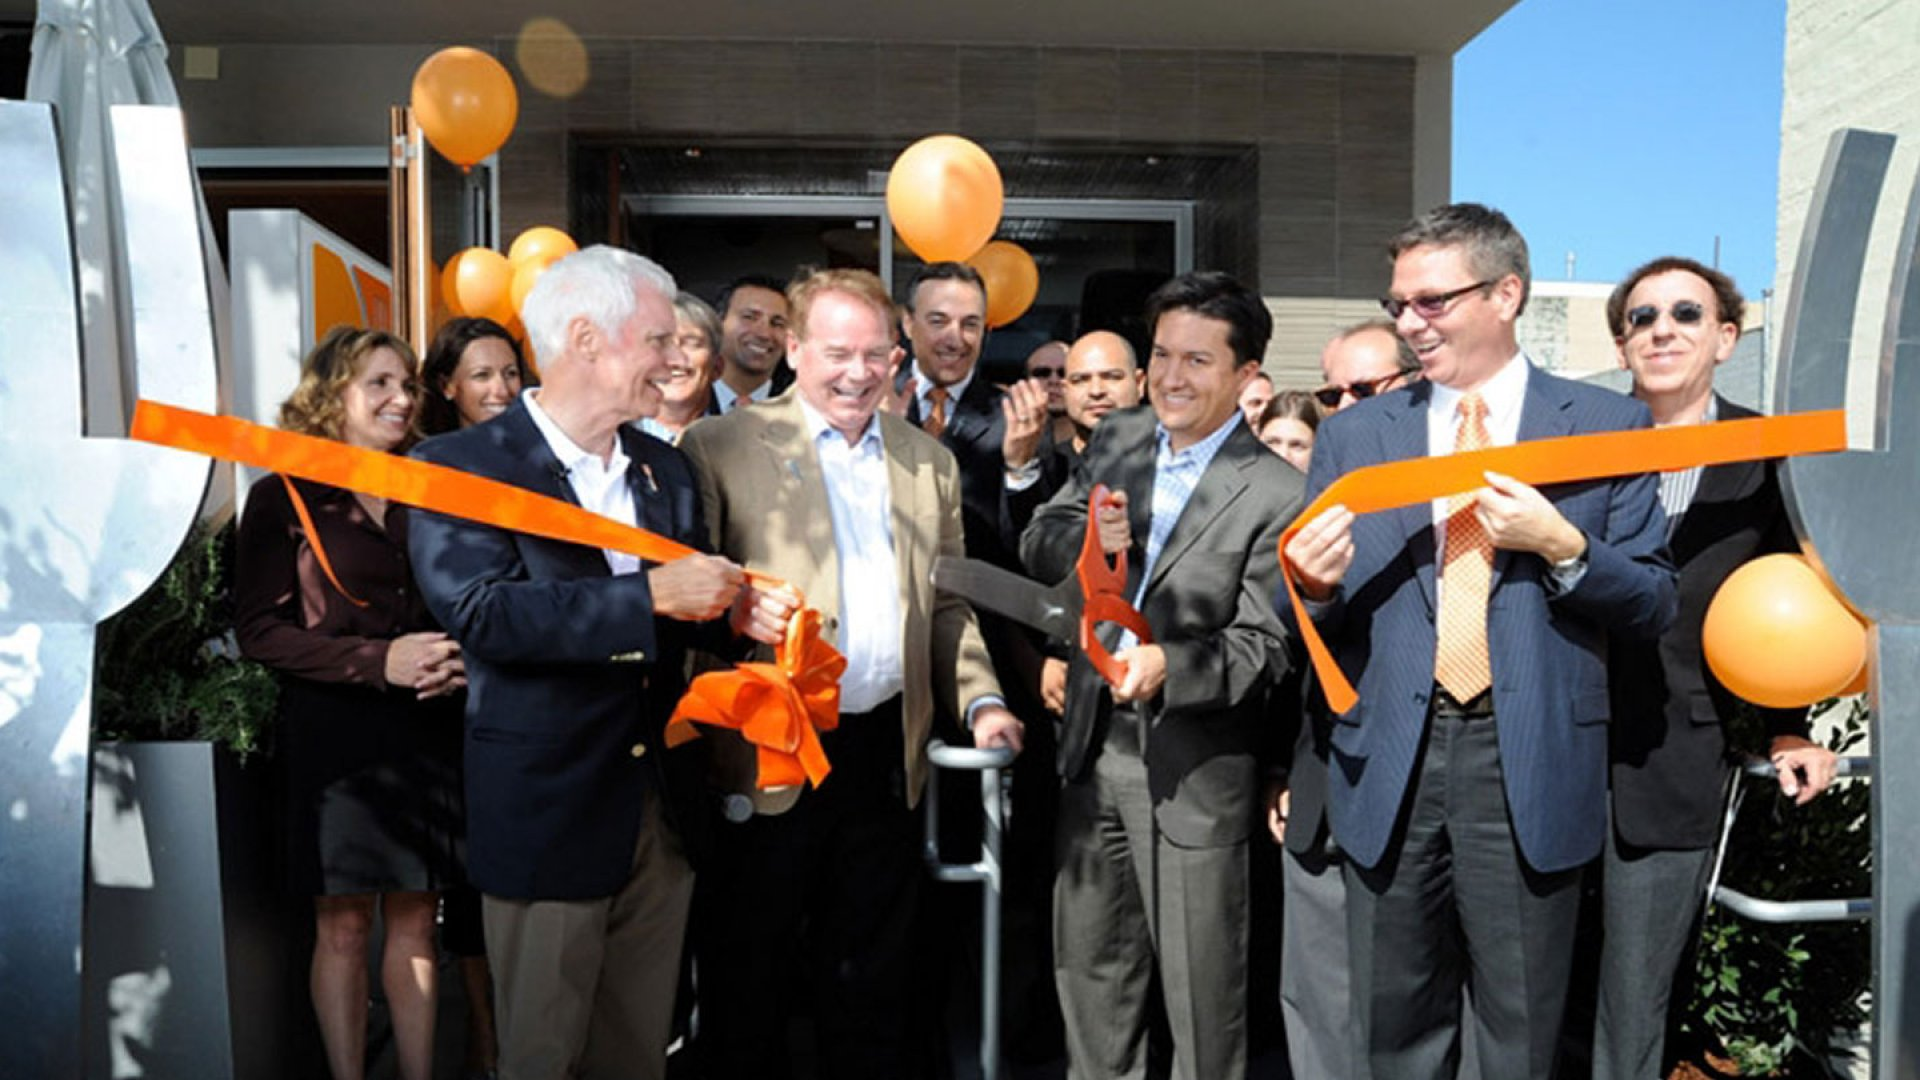 Mike Roberts participates in his company's ribbon cutting ceremony in Palo Alto, Calif. in 2011